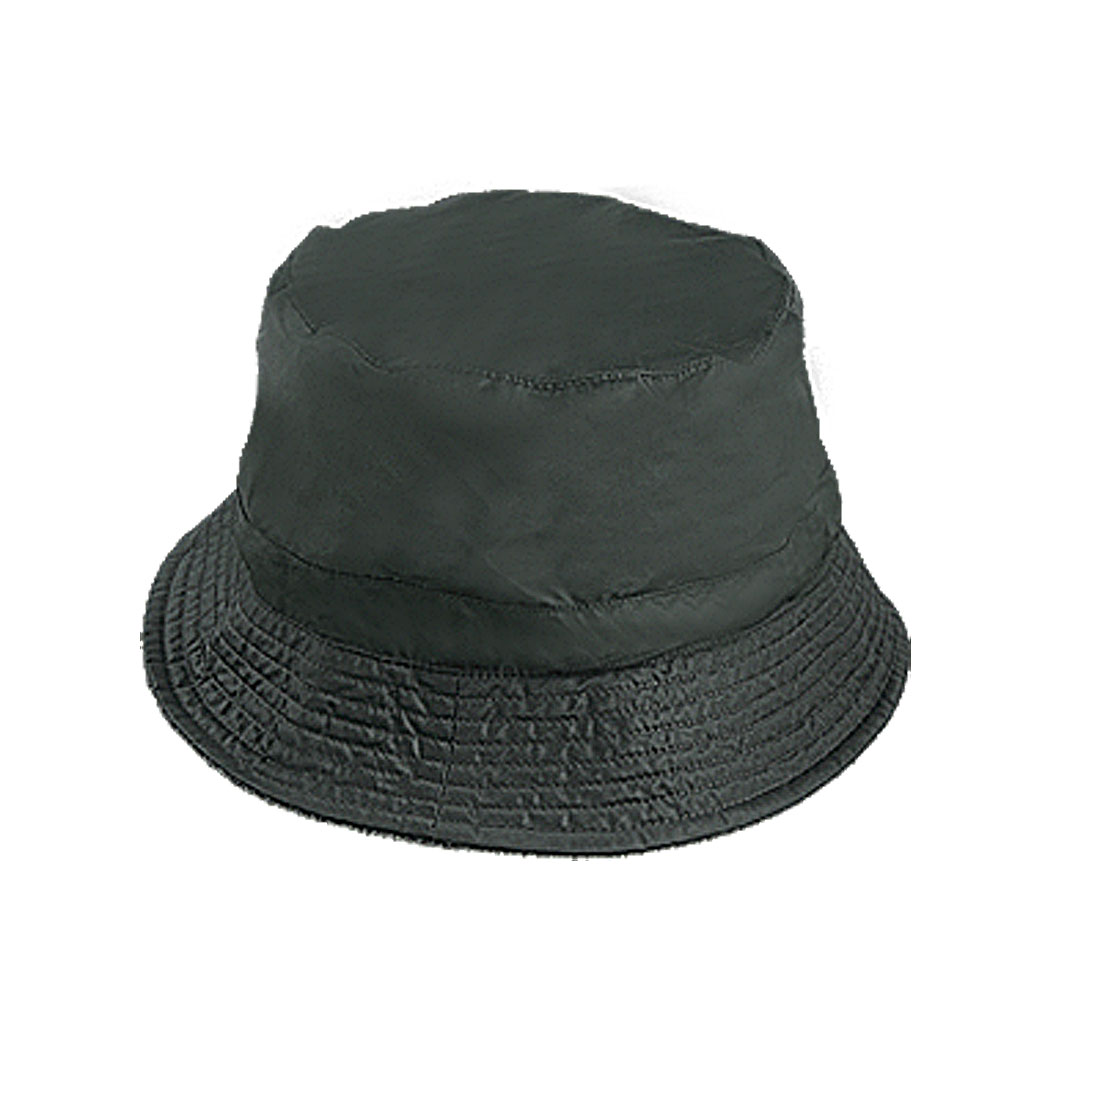 Dark Army Fishing Hunting Wide Floppy Brim Bucket Sun Hat